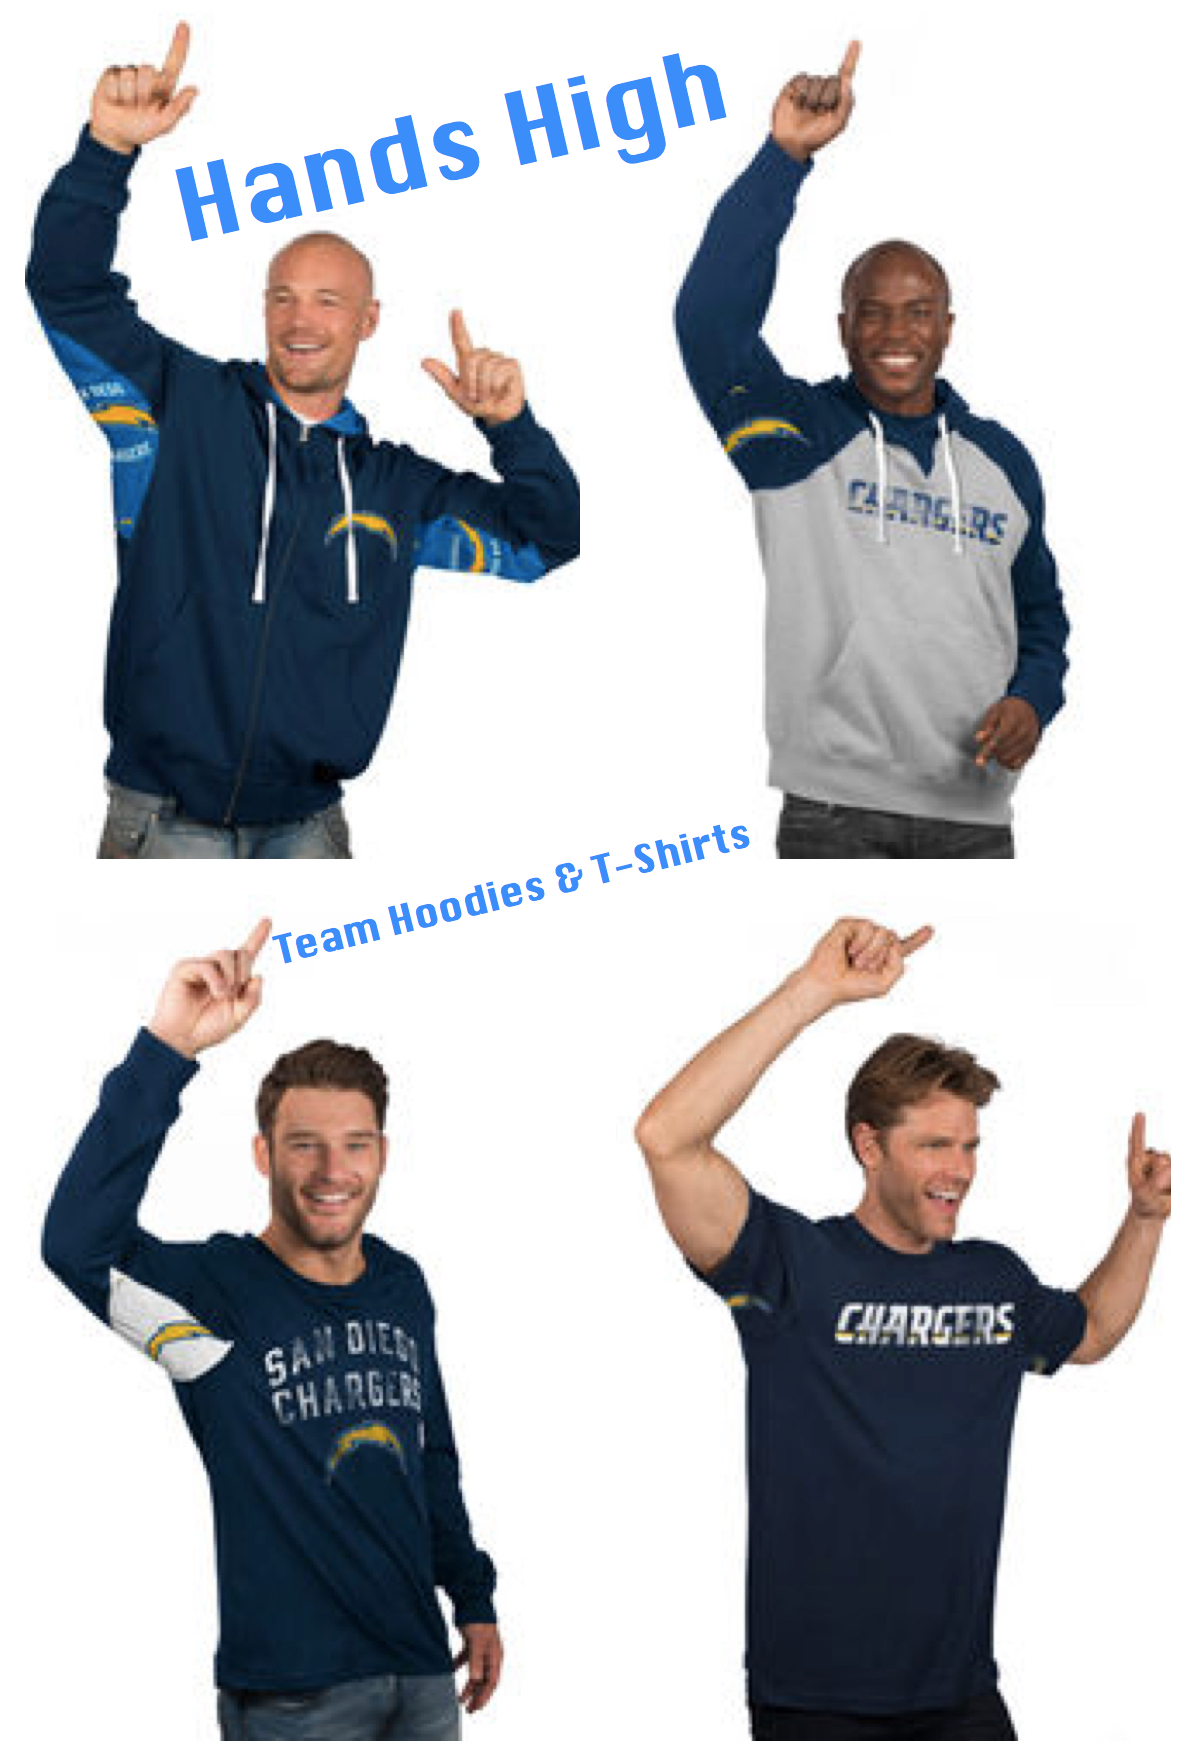 Hands High Team Hoodies and T-Shirts